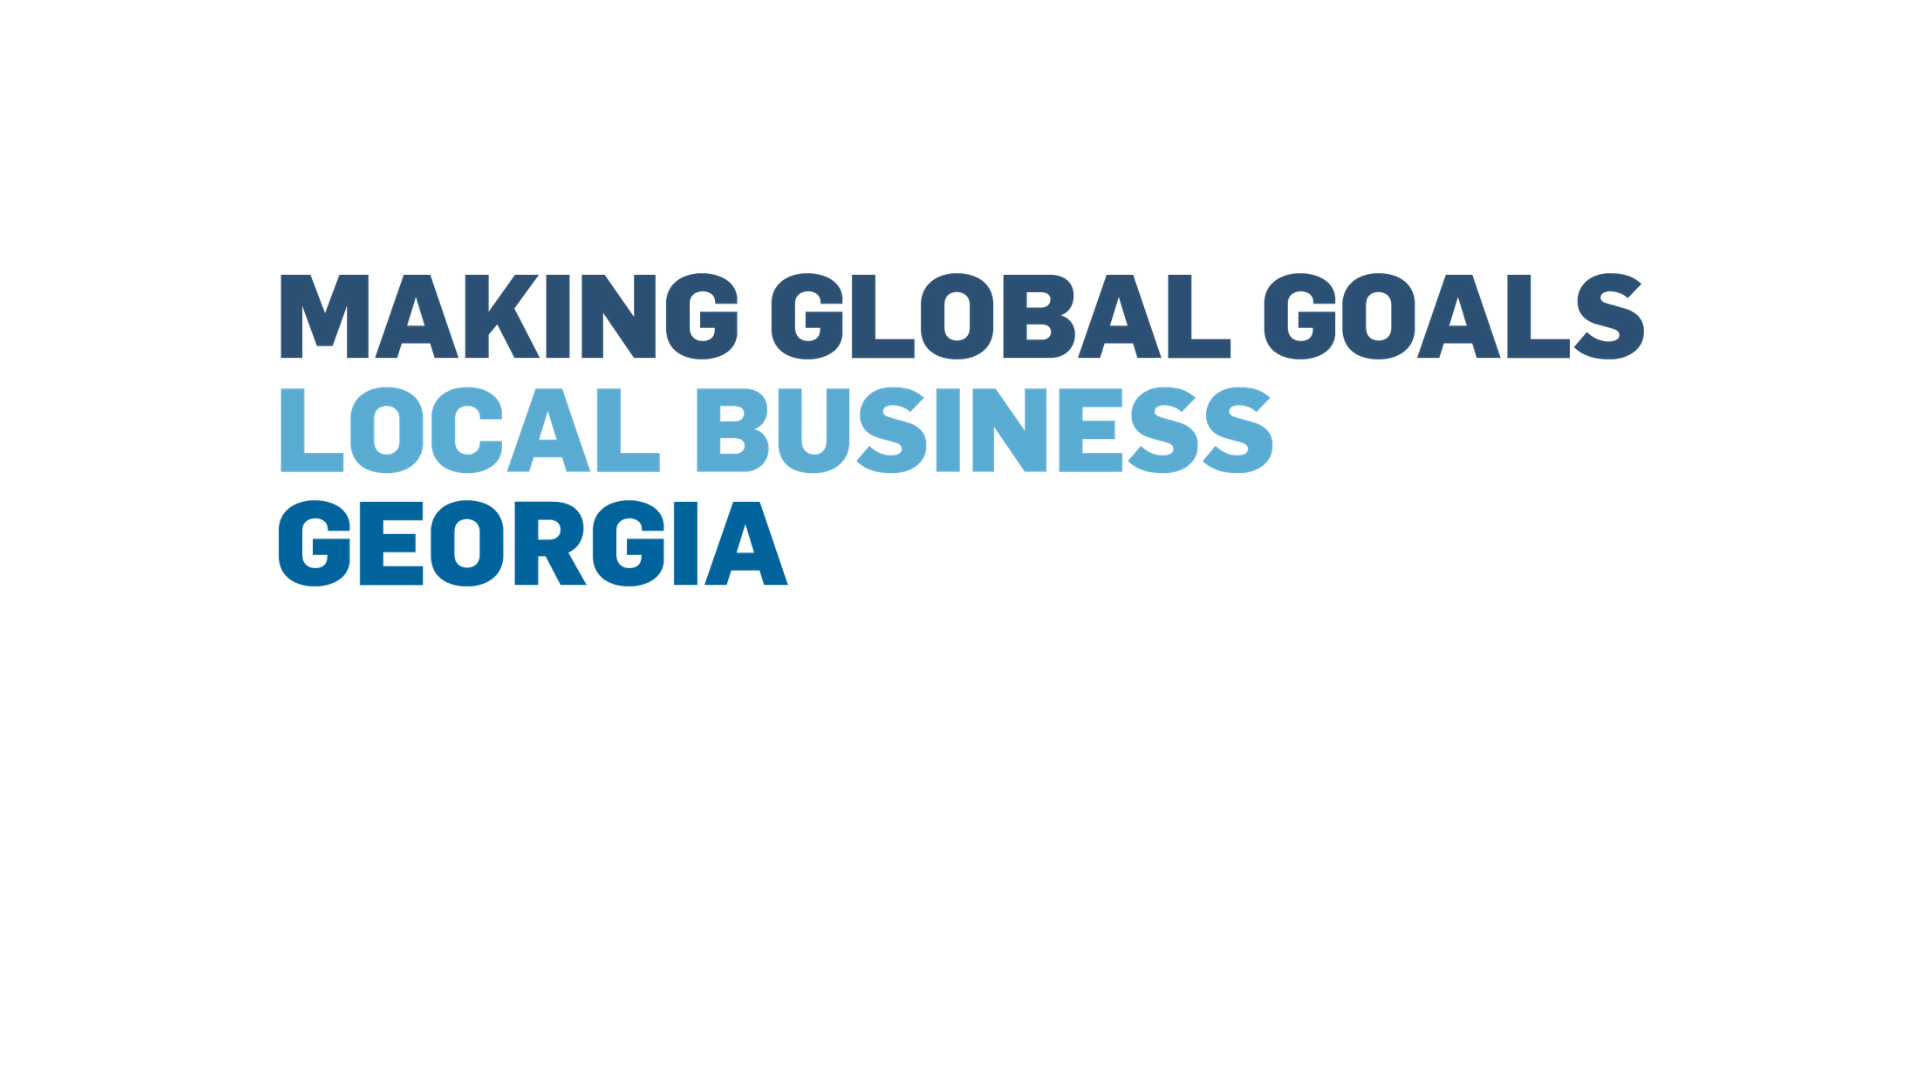 Making Global Goals Local Business у Грузії